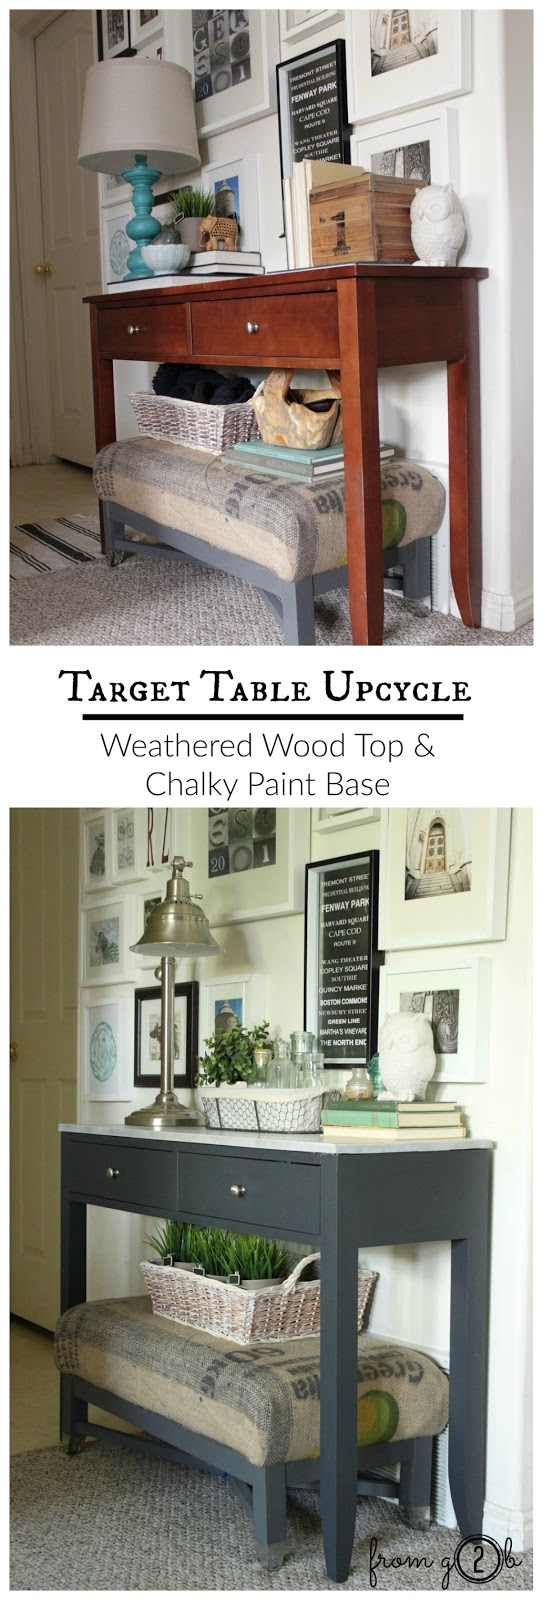 #Target Table Upcycle: Weatherwood Maple Top, #MissMustardSeed White Wax and Custom #Chalky Painted Base